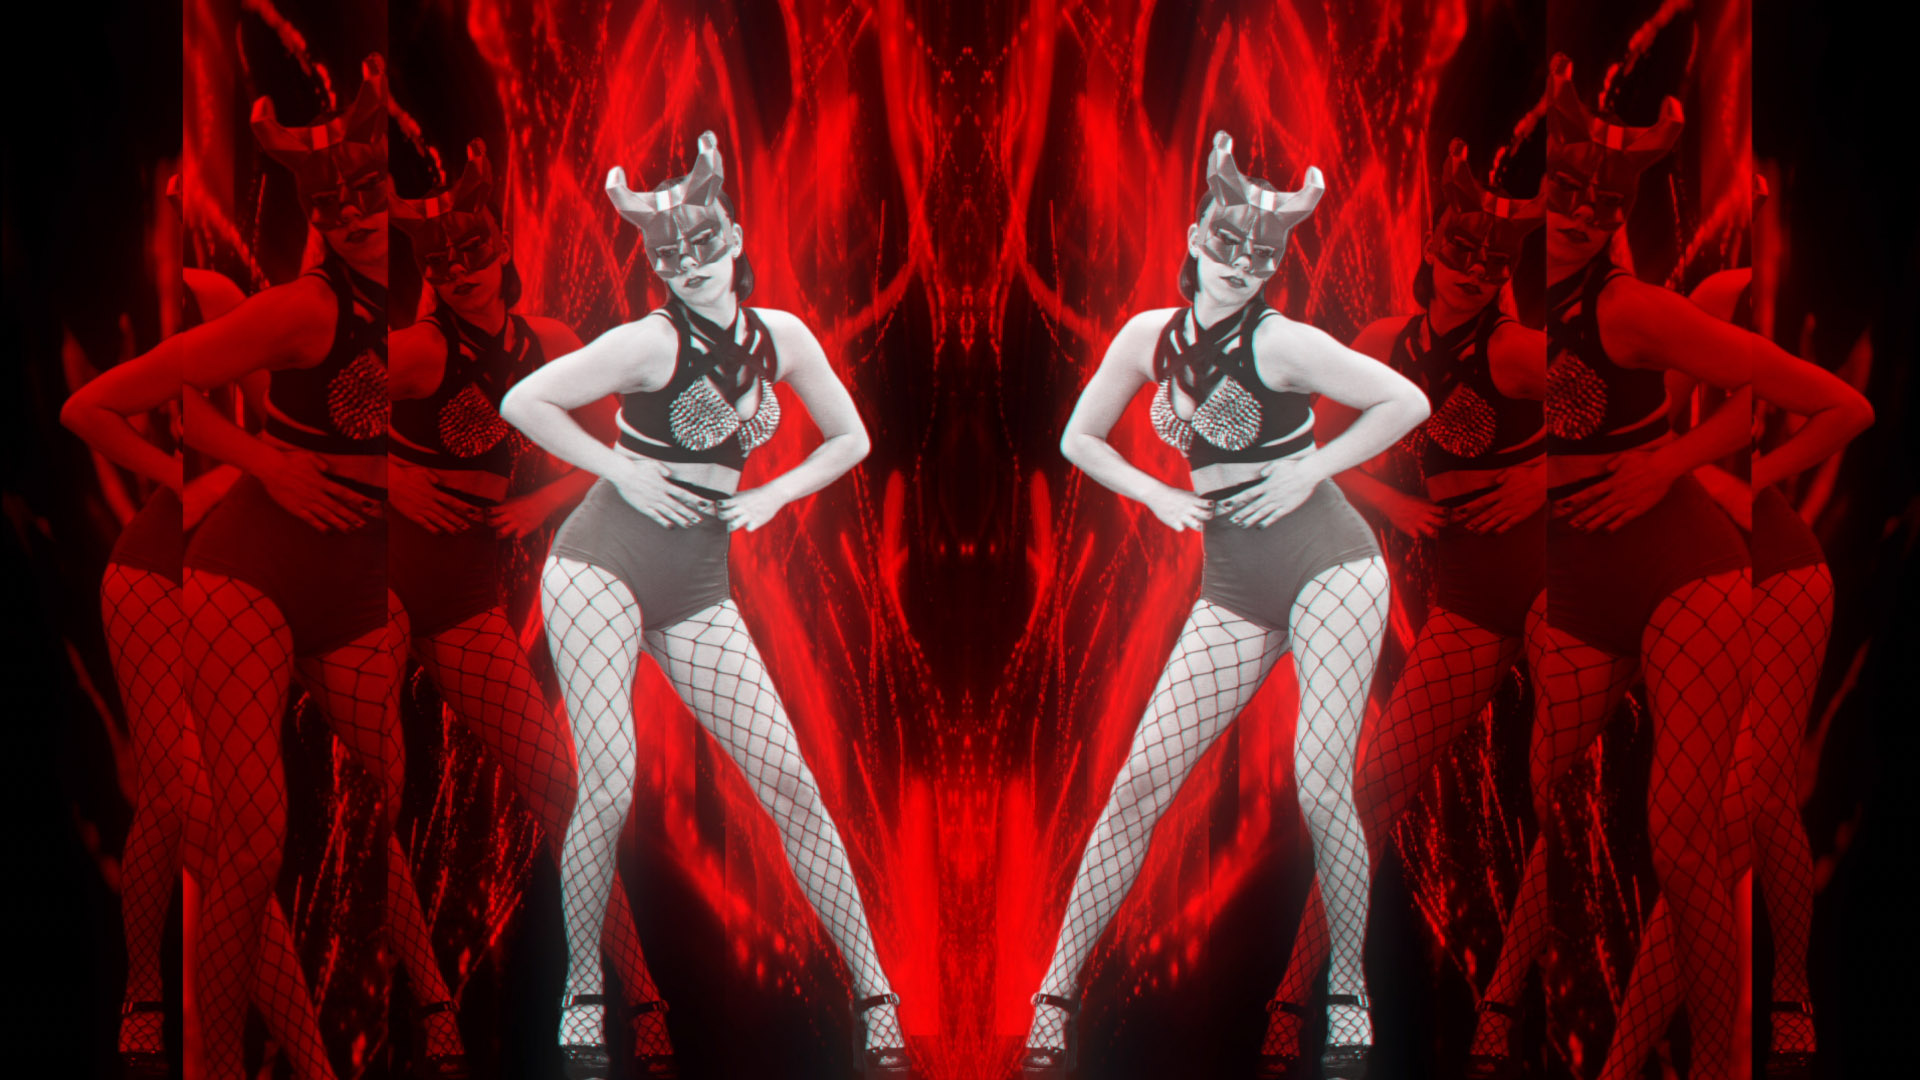 Red Evil Go Go Girl Horn Demons stock footage Video art vj loop